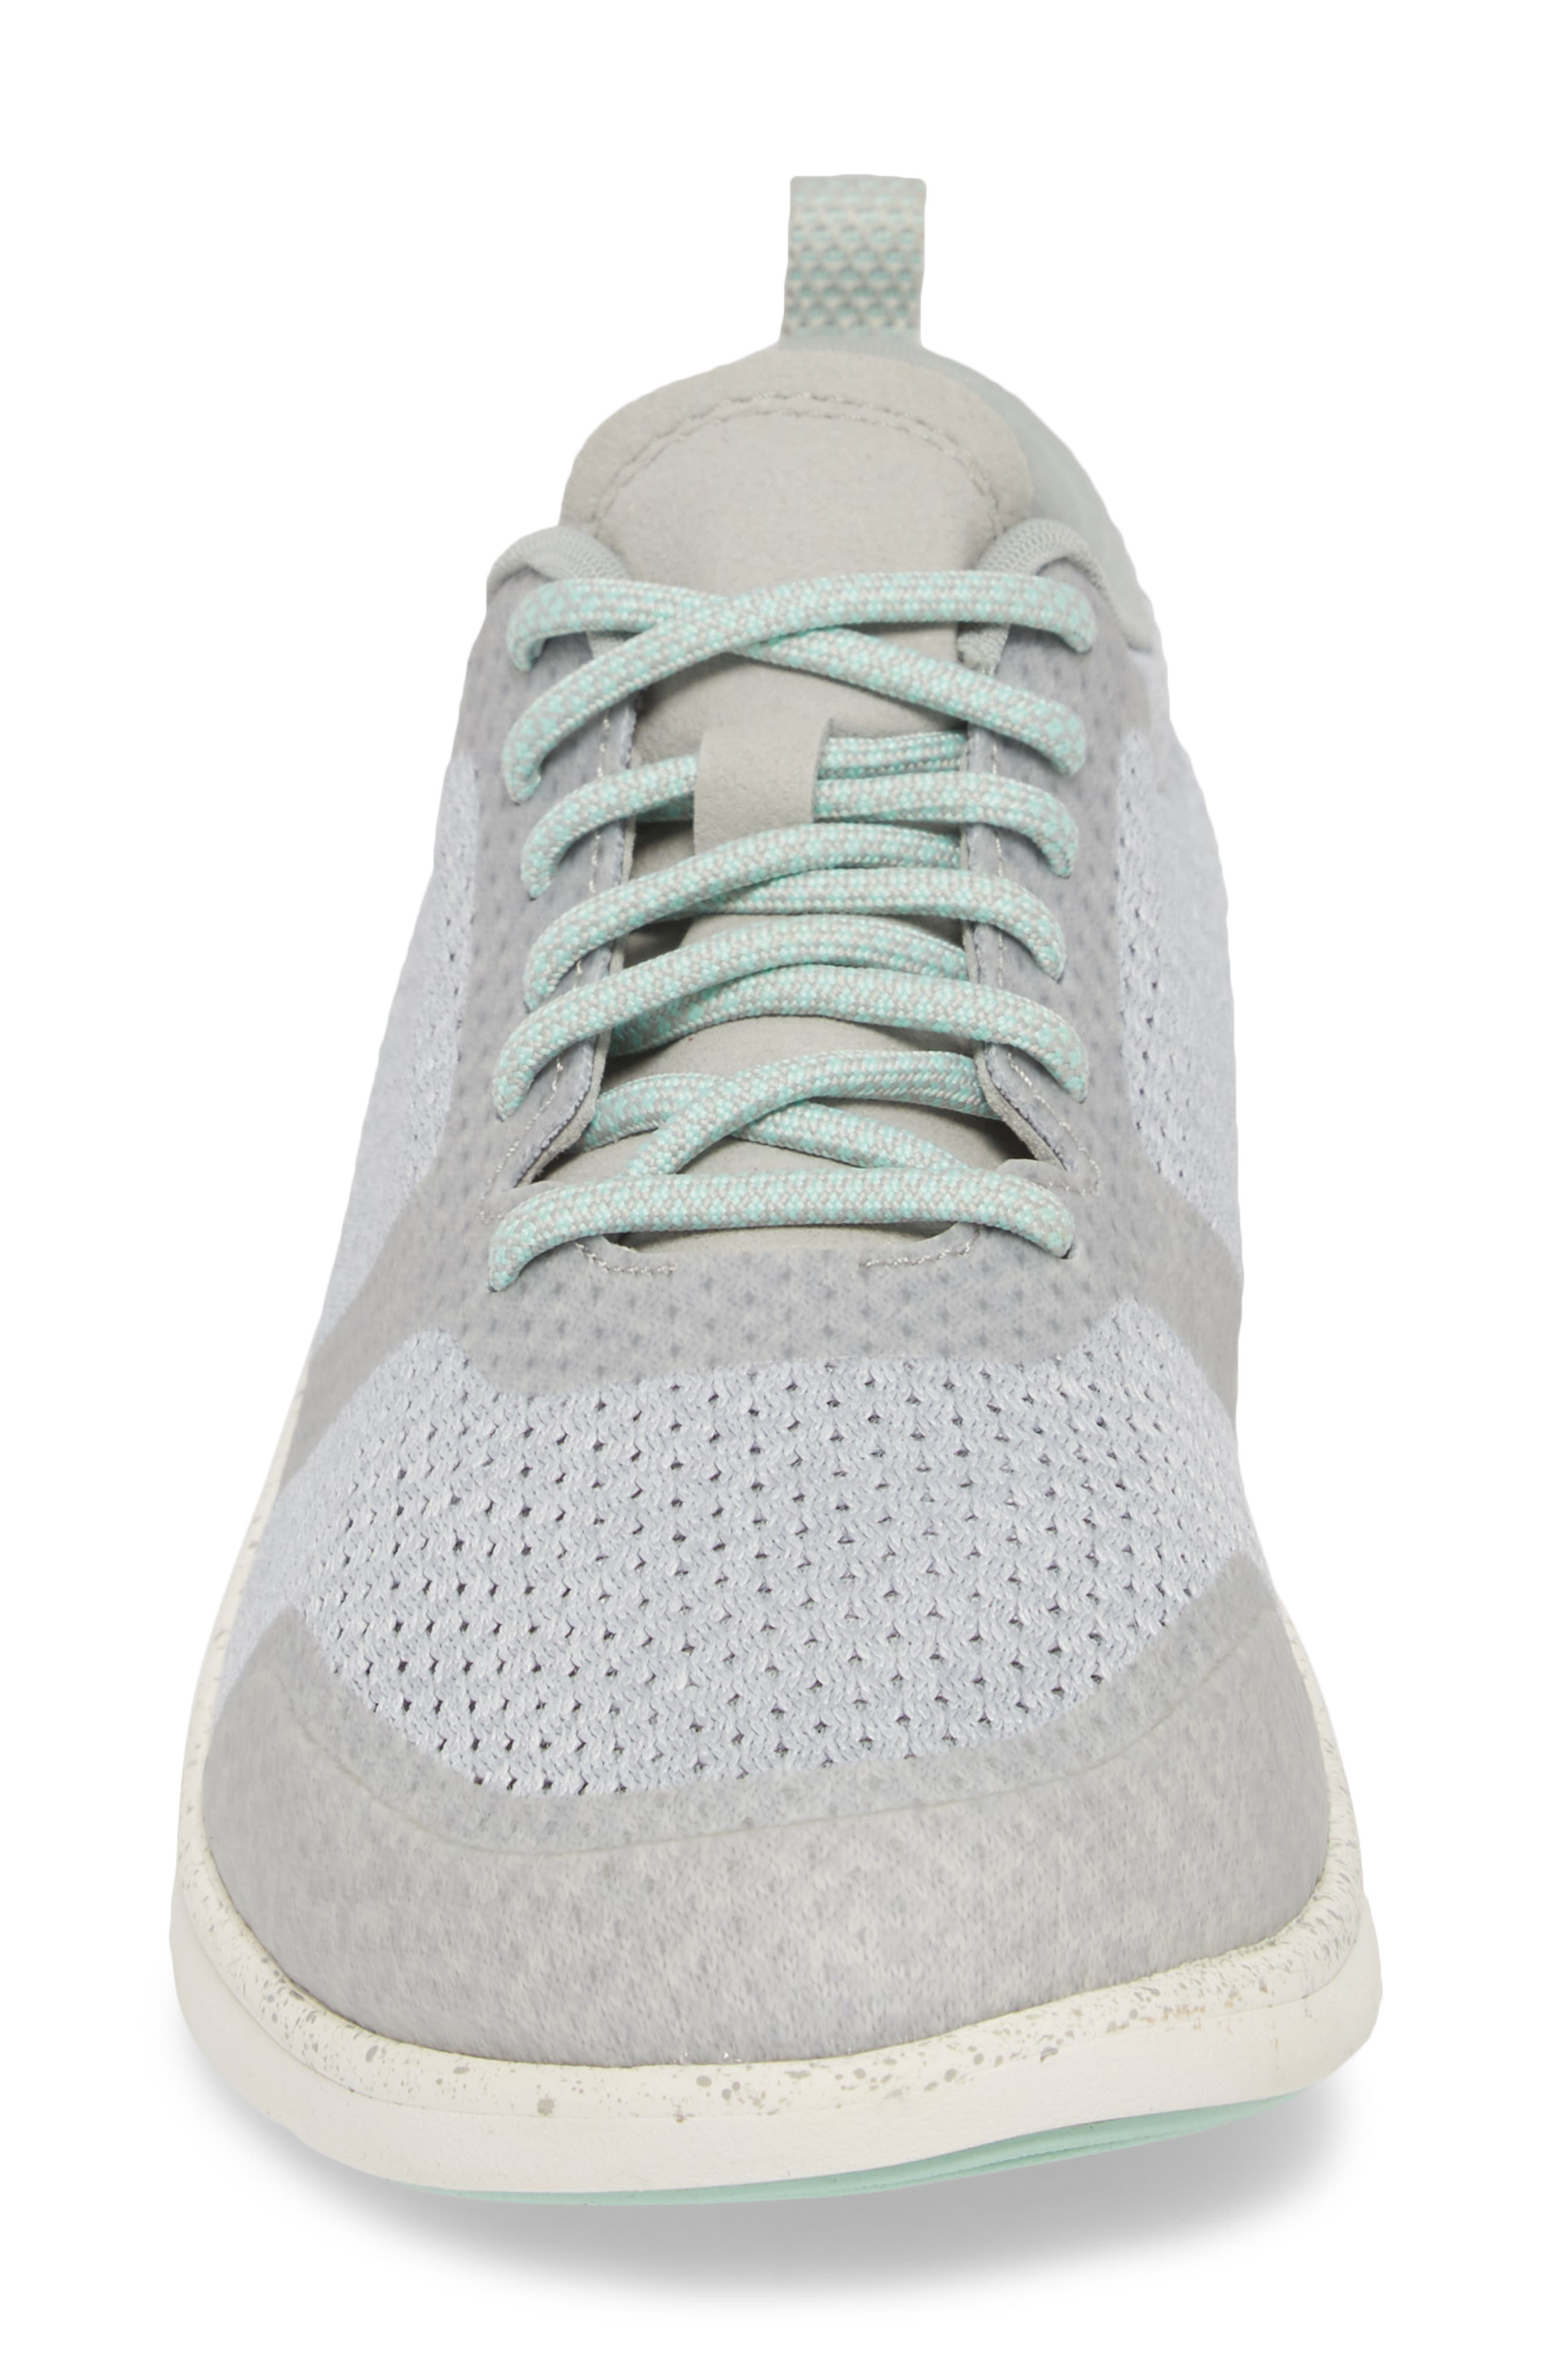 Linden Sneaker,                             Alternate thumbnail 6, color,                             High Rise/ Yucca